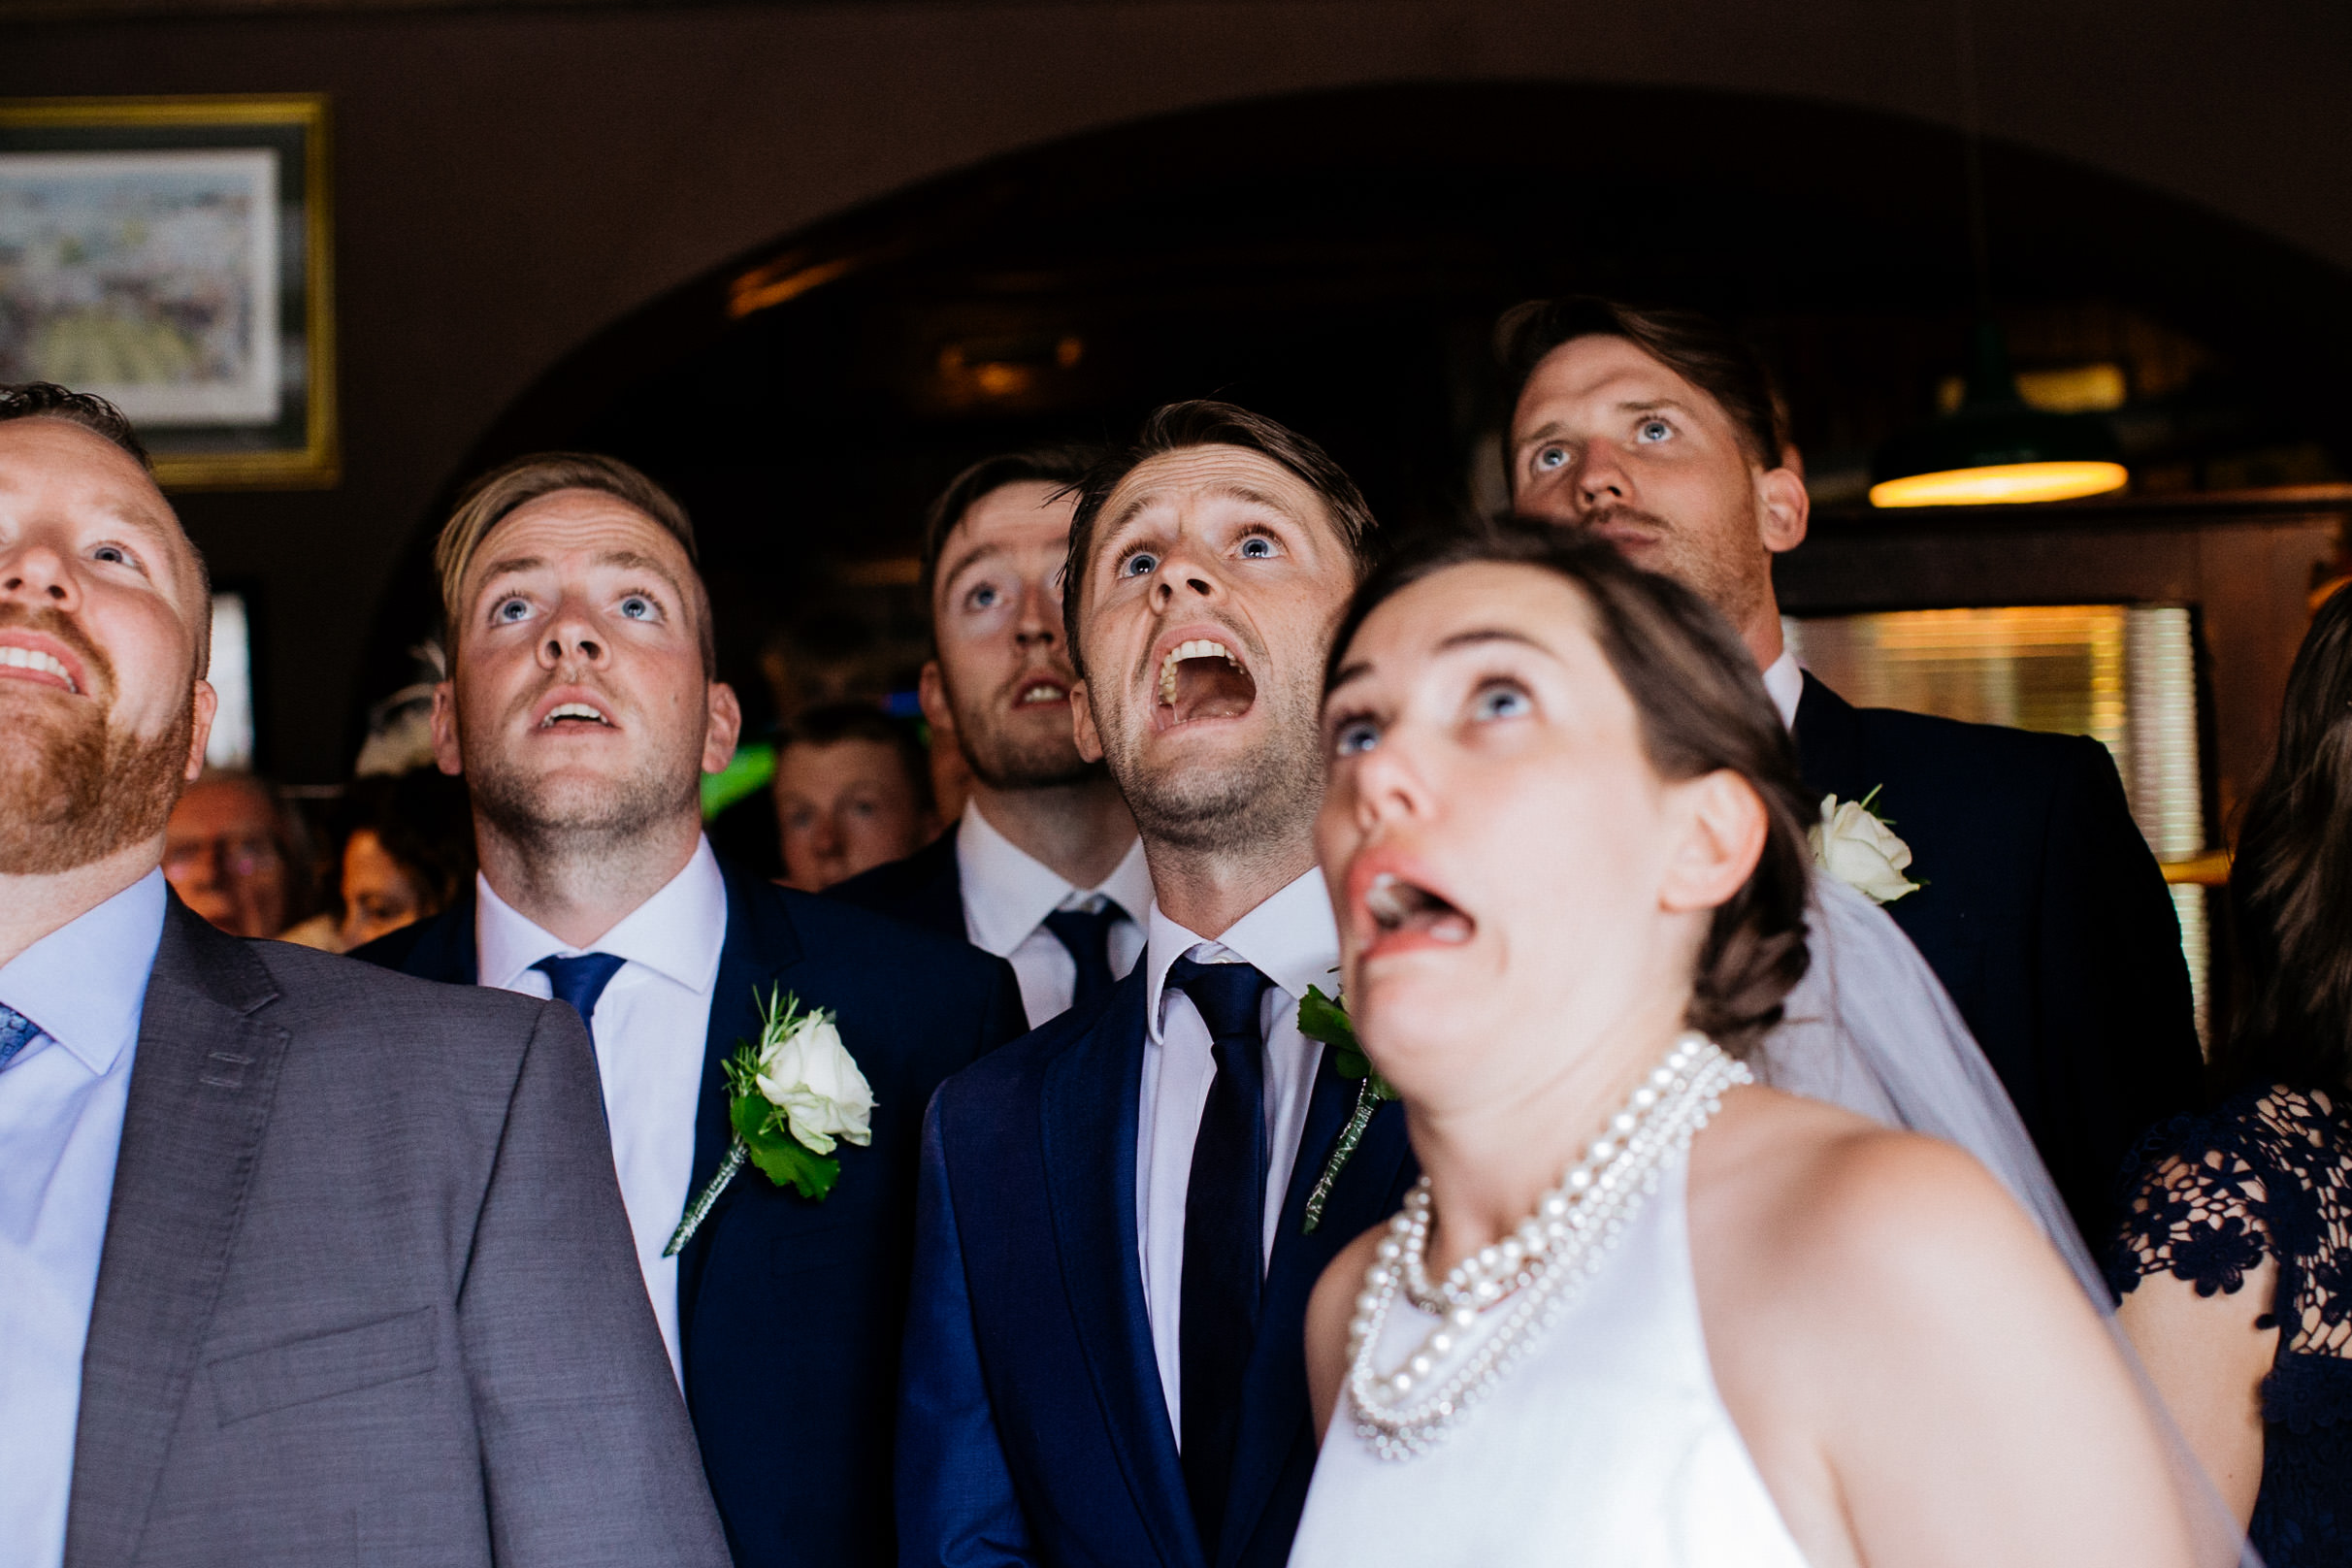 clairebyrnephotography-fun-wedding-photographer-ireland-creative-226.jpg